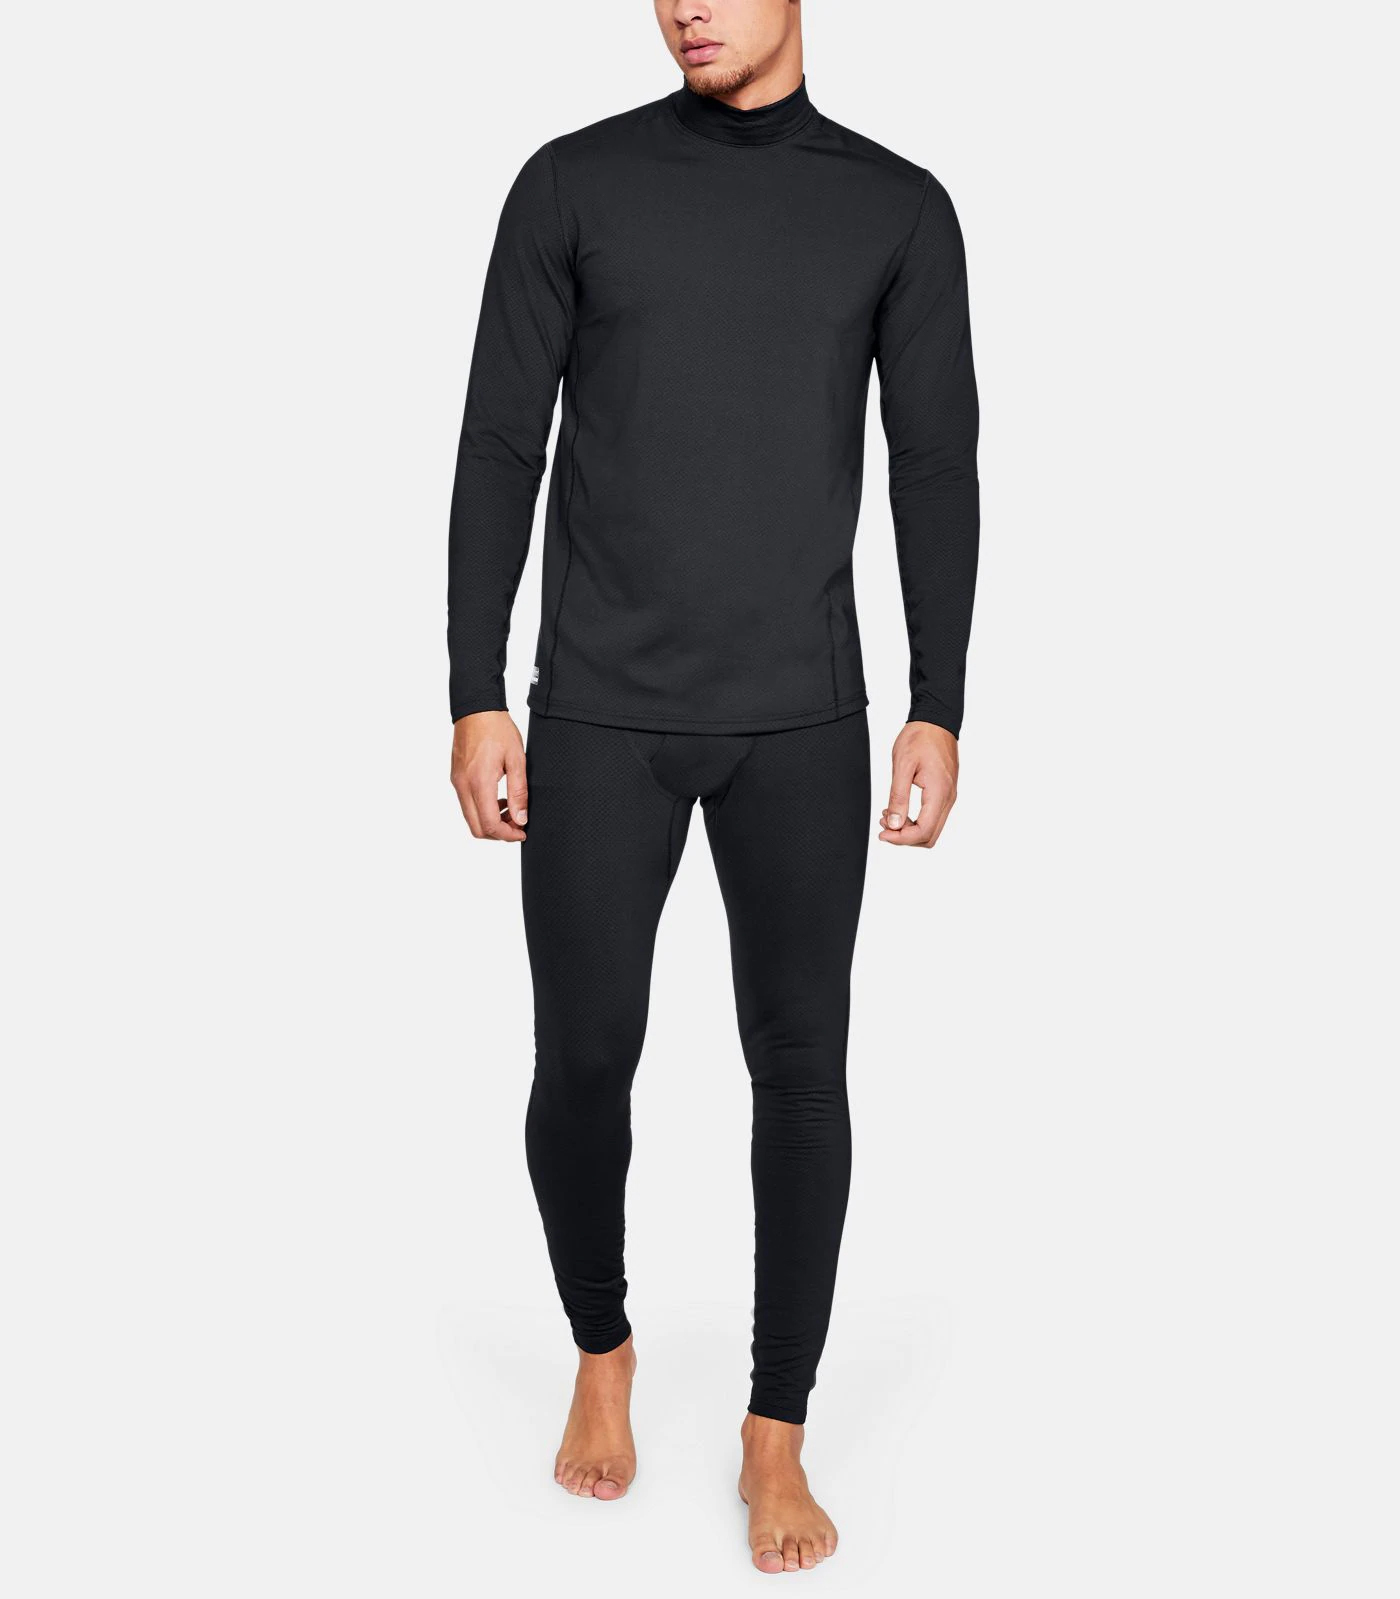 MENS_BASE-LAYERS_ReactorMock_UAR1316935001_03